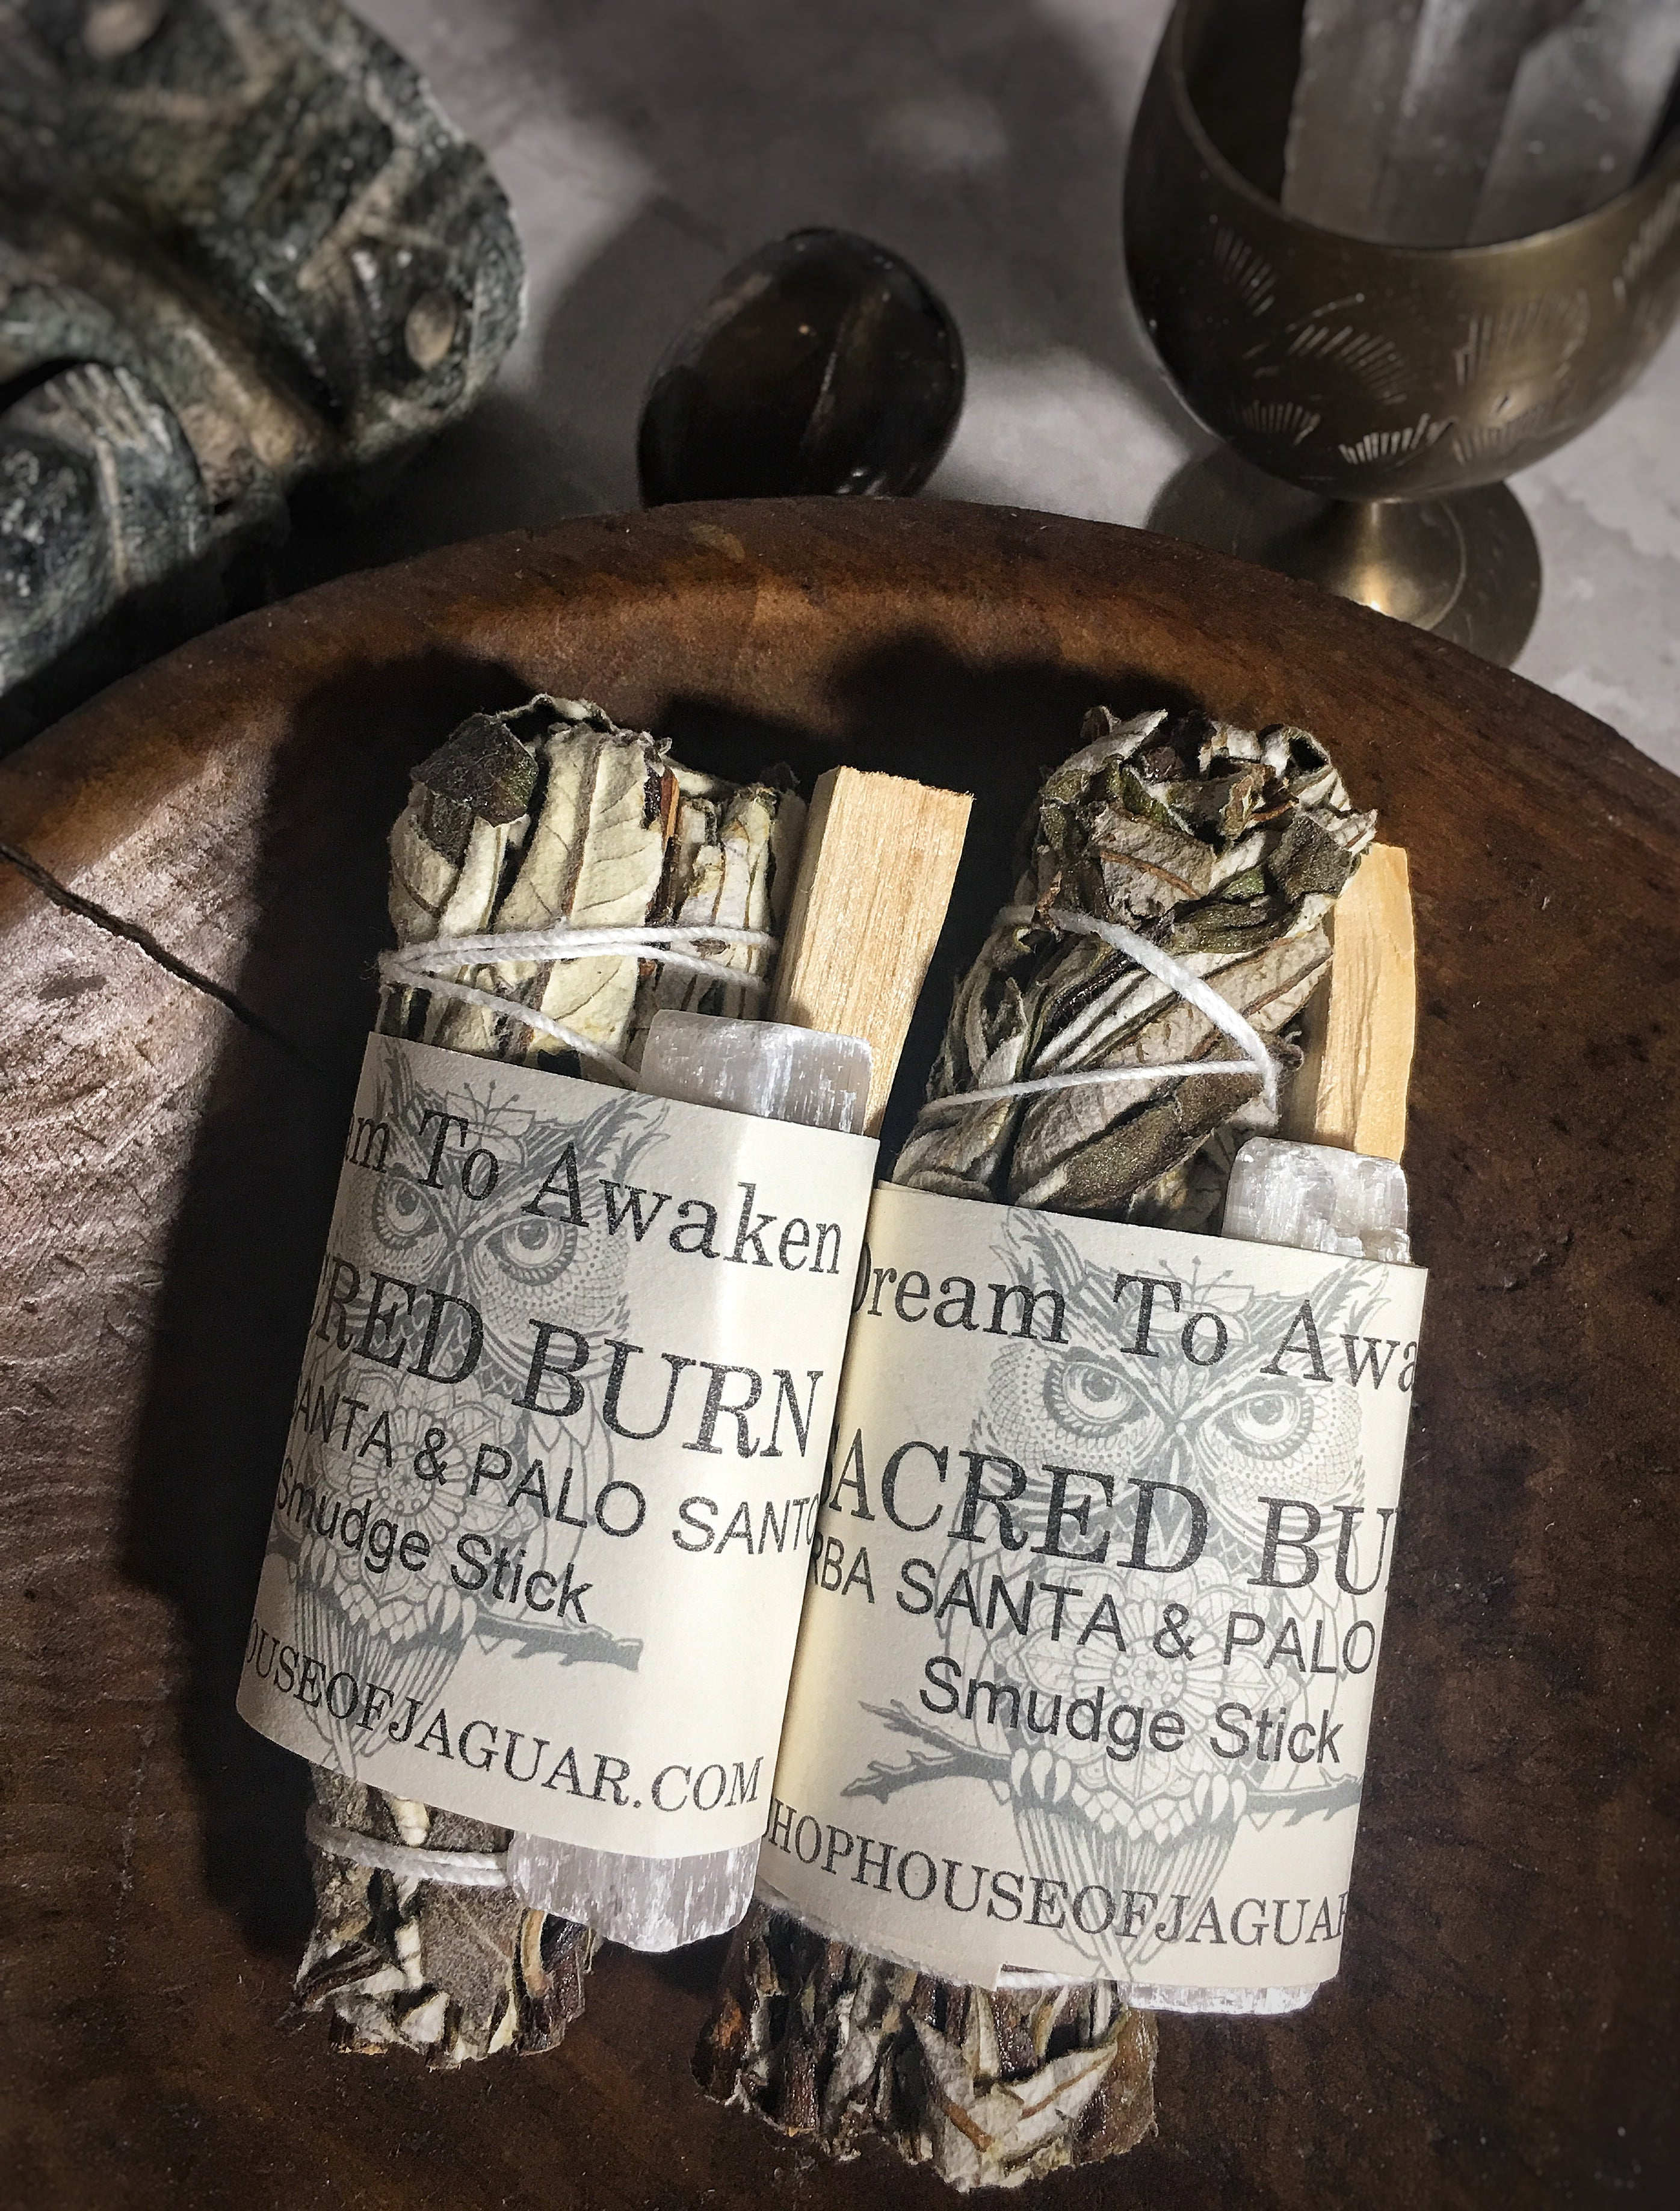 Sacred Burn - Yerba Santa, Palo Santo and Selenite